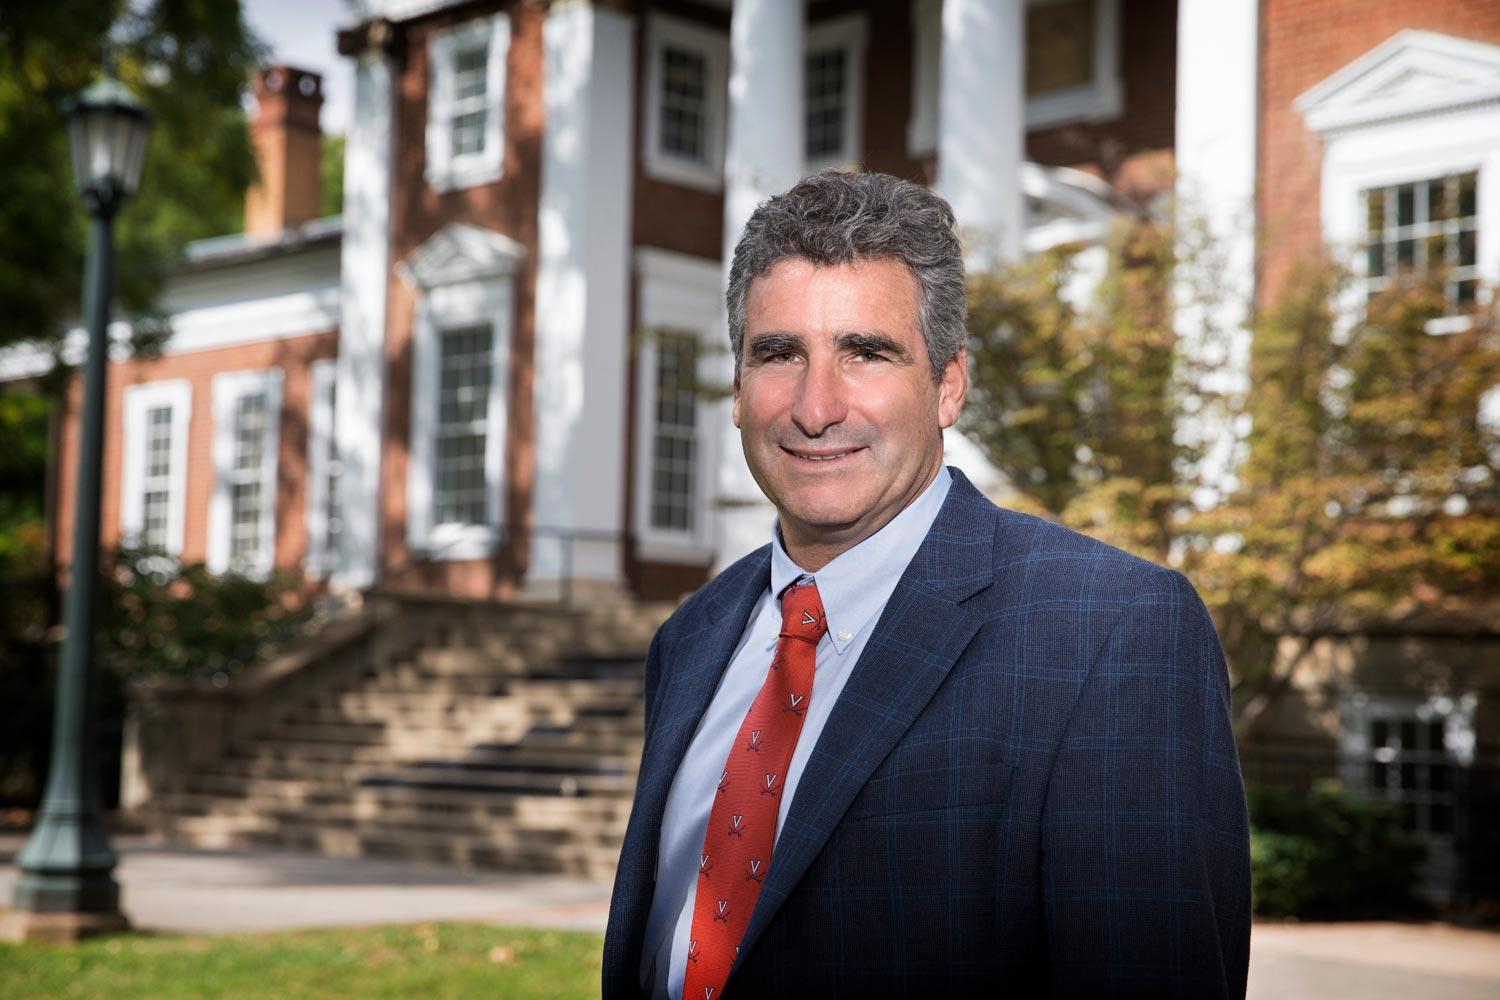 Thomas C. Katsouleas, UVA's executive vice president and provost, will speak at the Fall Convocation, to be held Oct. 26 during Family Weekend.